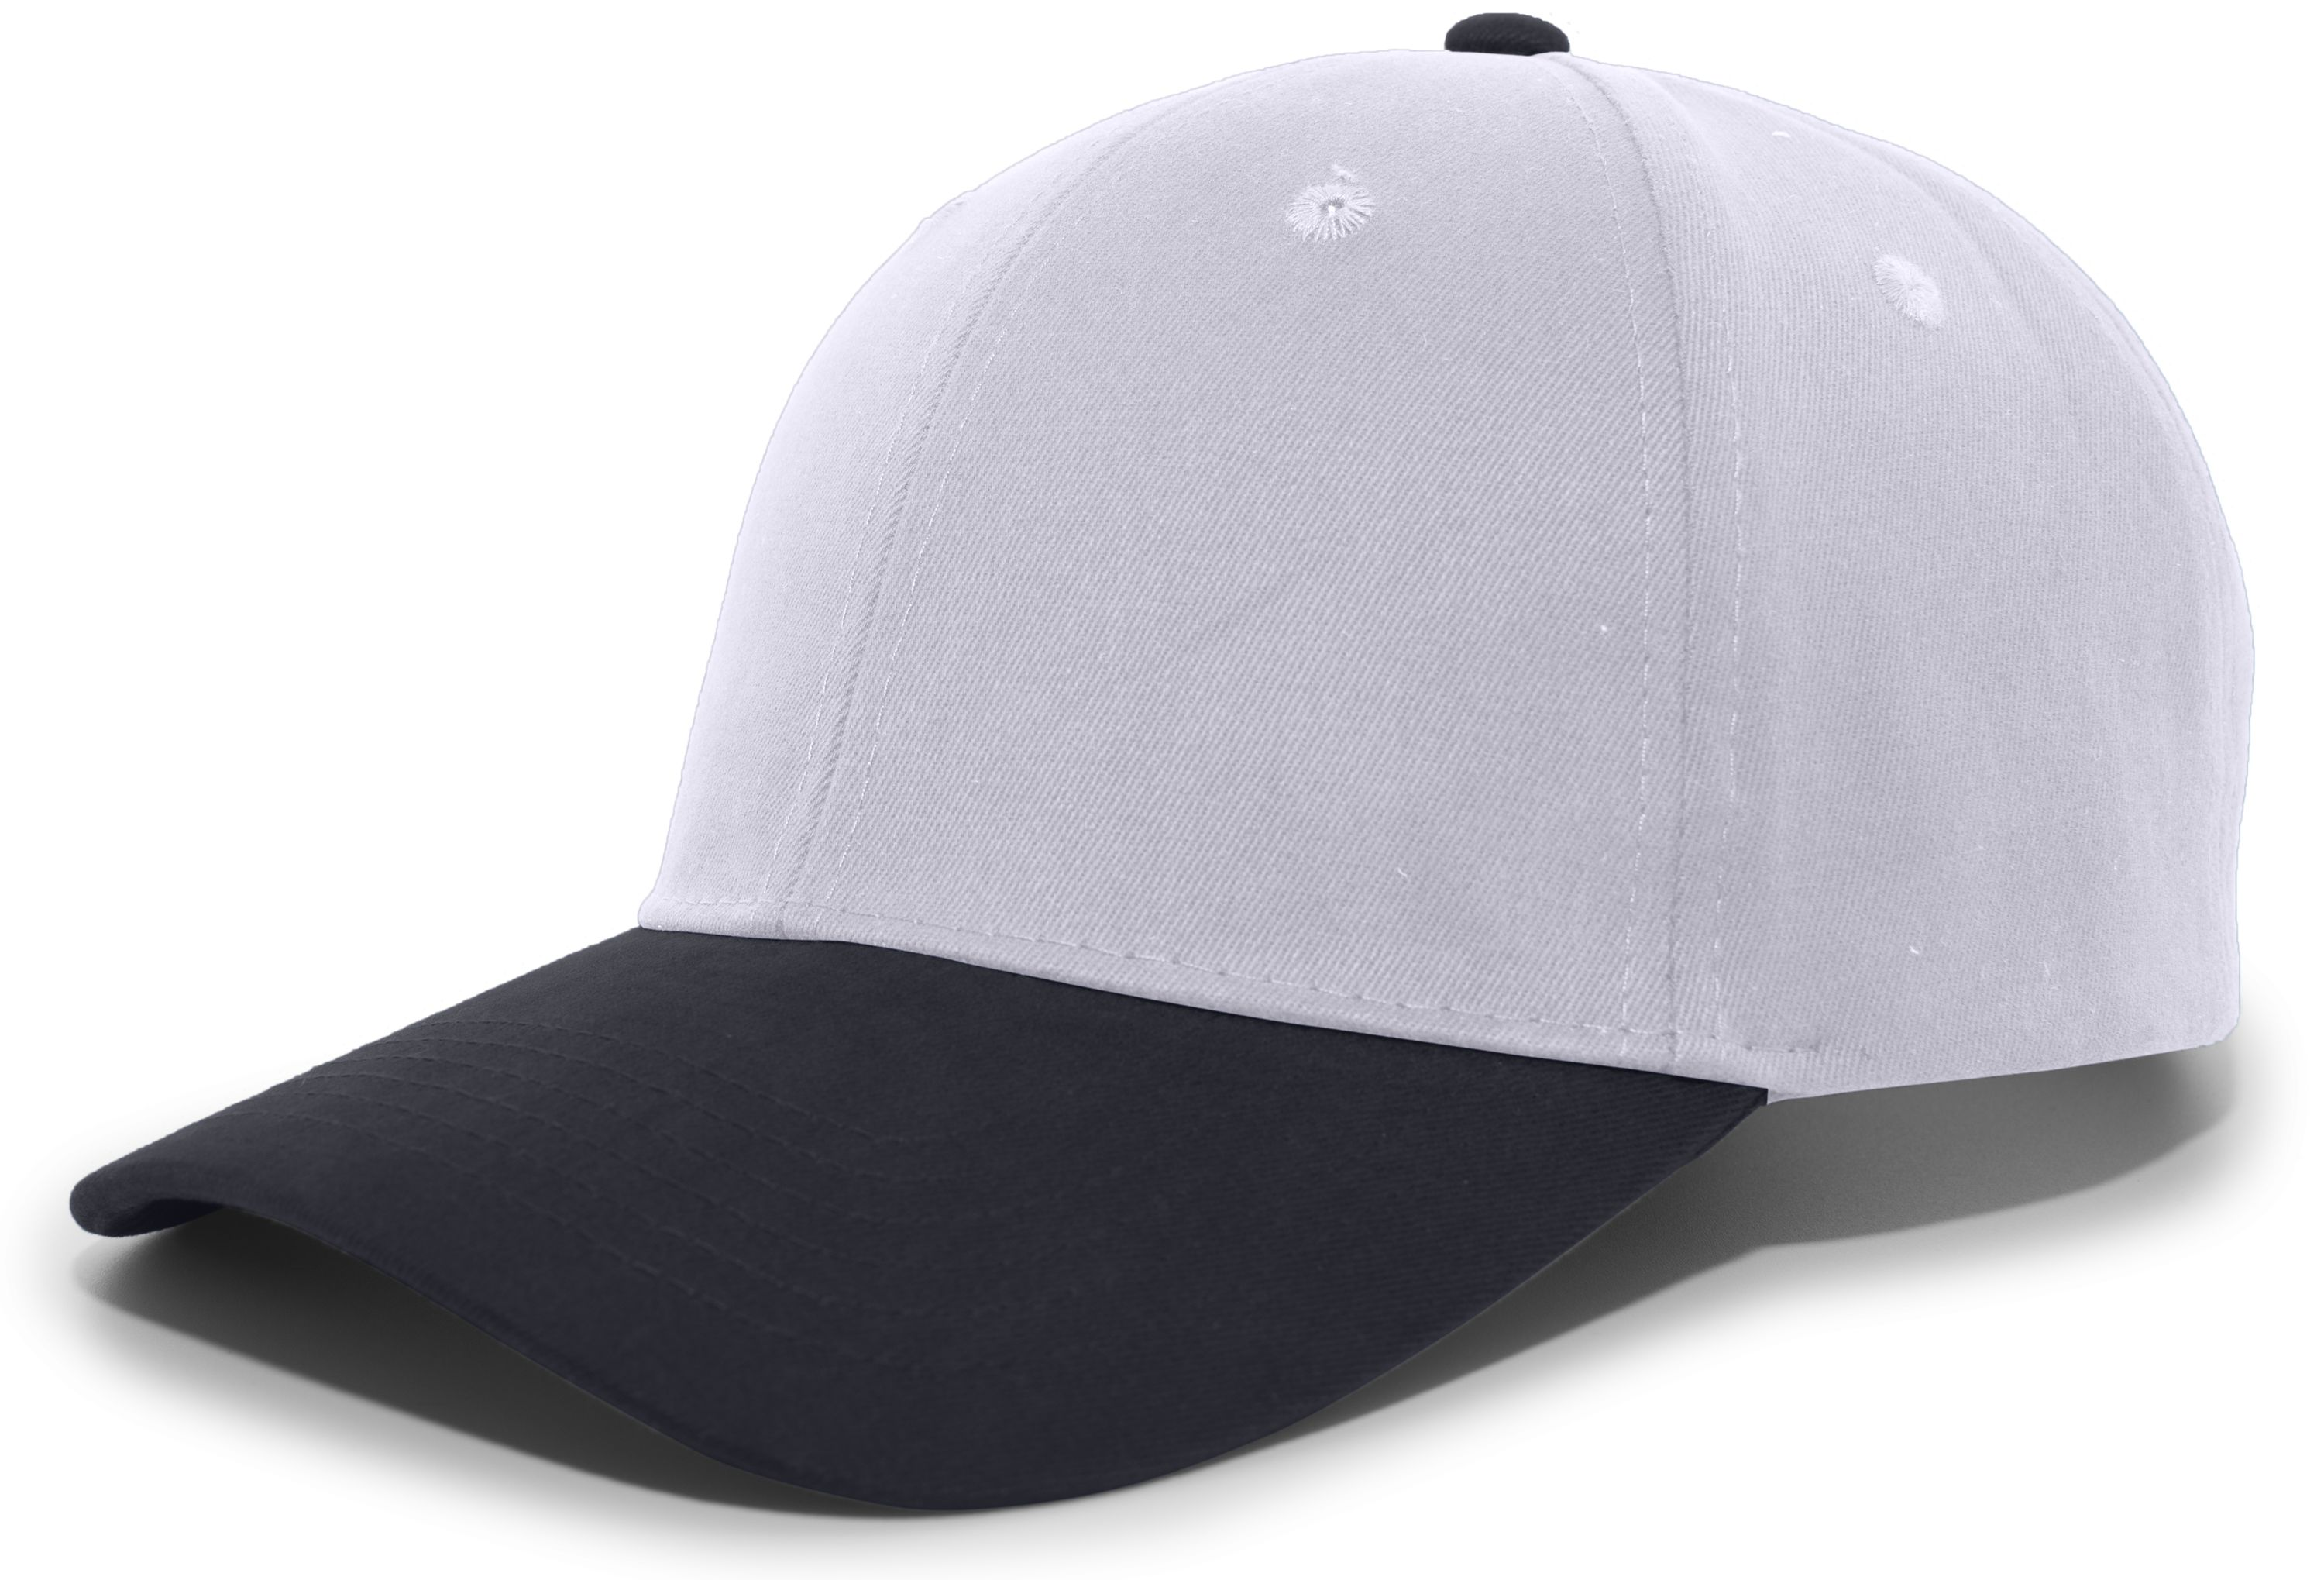 Brushed Cotton Twill Hook-And-Loop Adjustable Cap - SILVER/NAVY